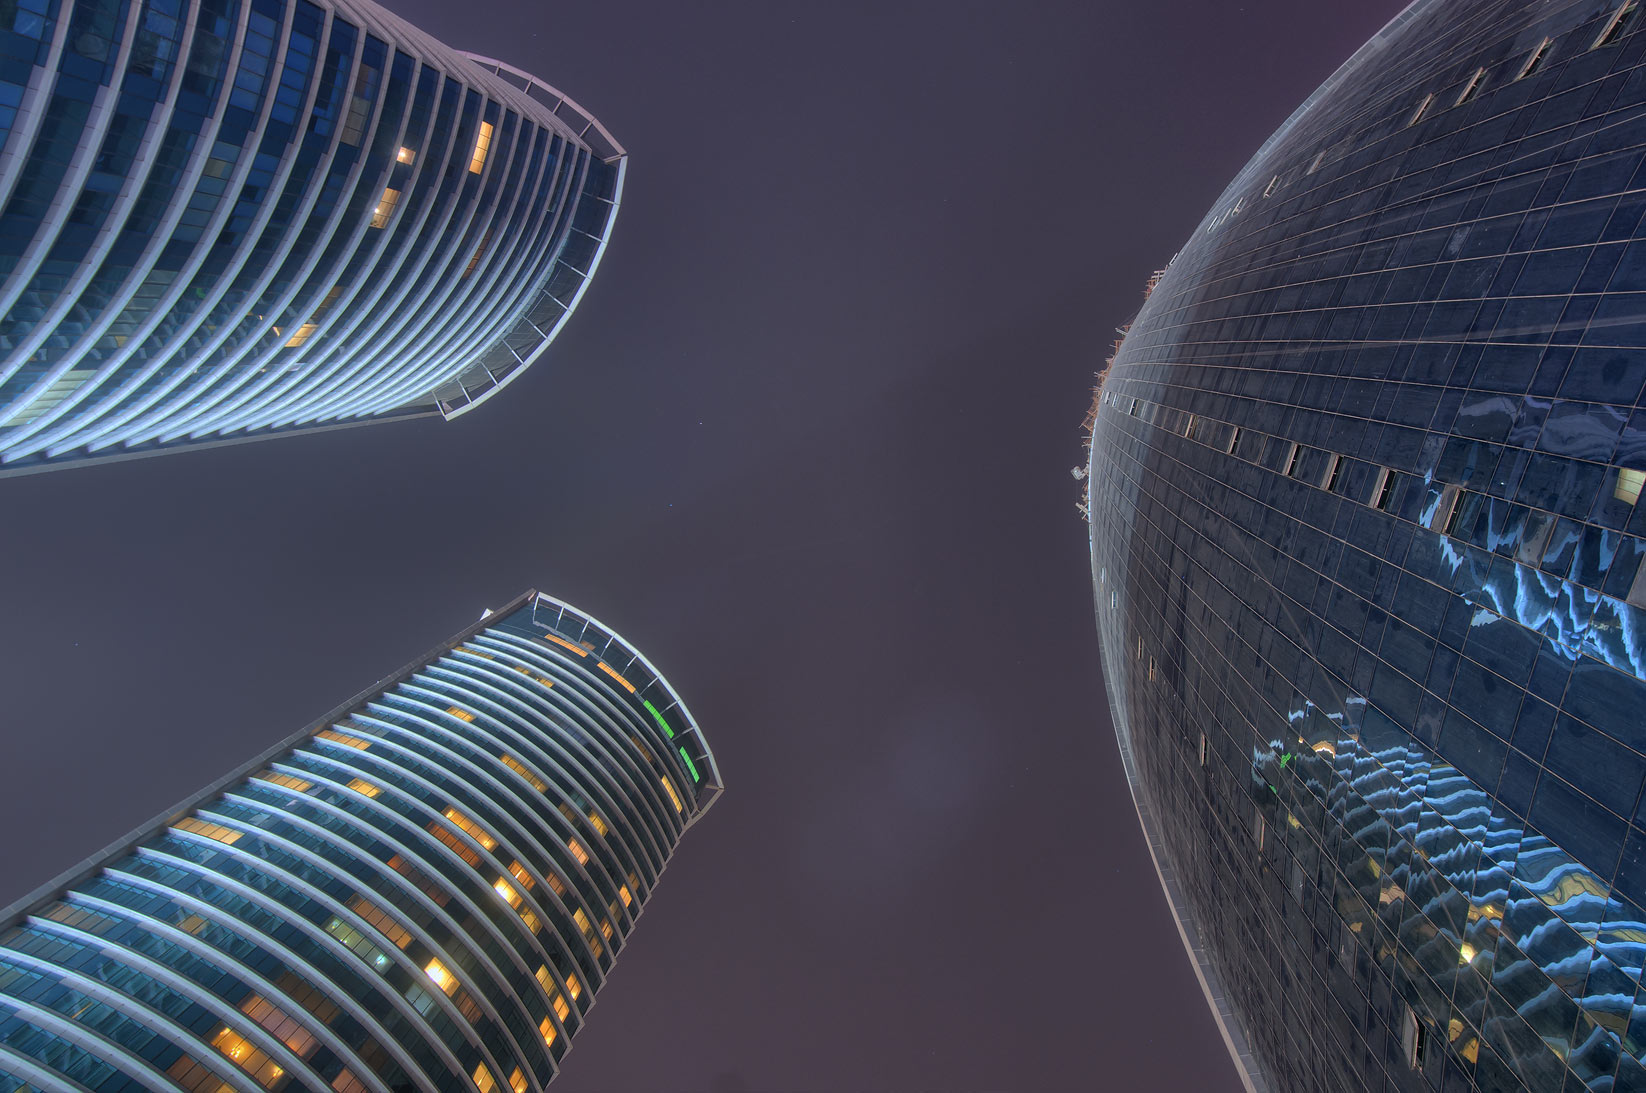 Twin Al Fardan and Woqod towers in West Bay. Doha, Qatar